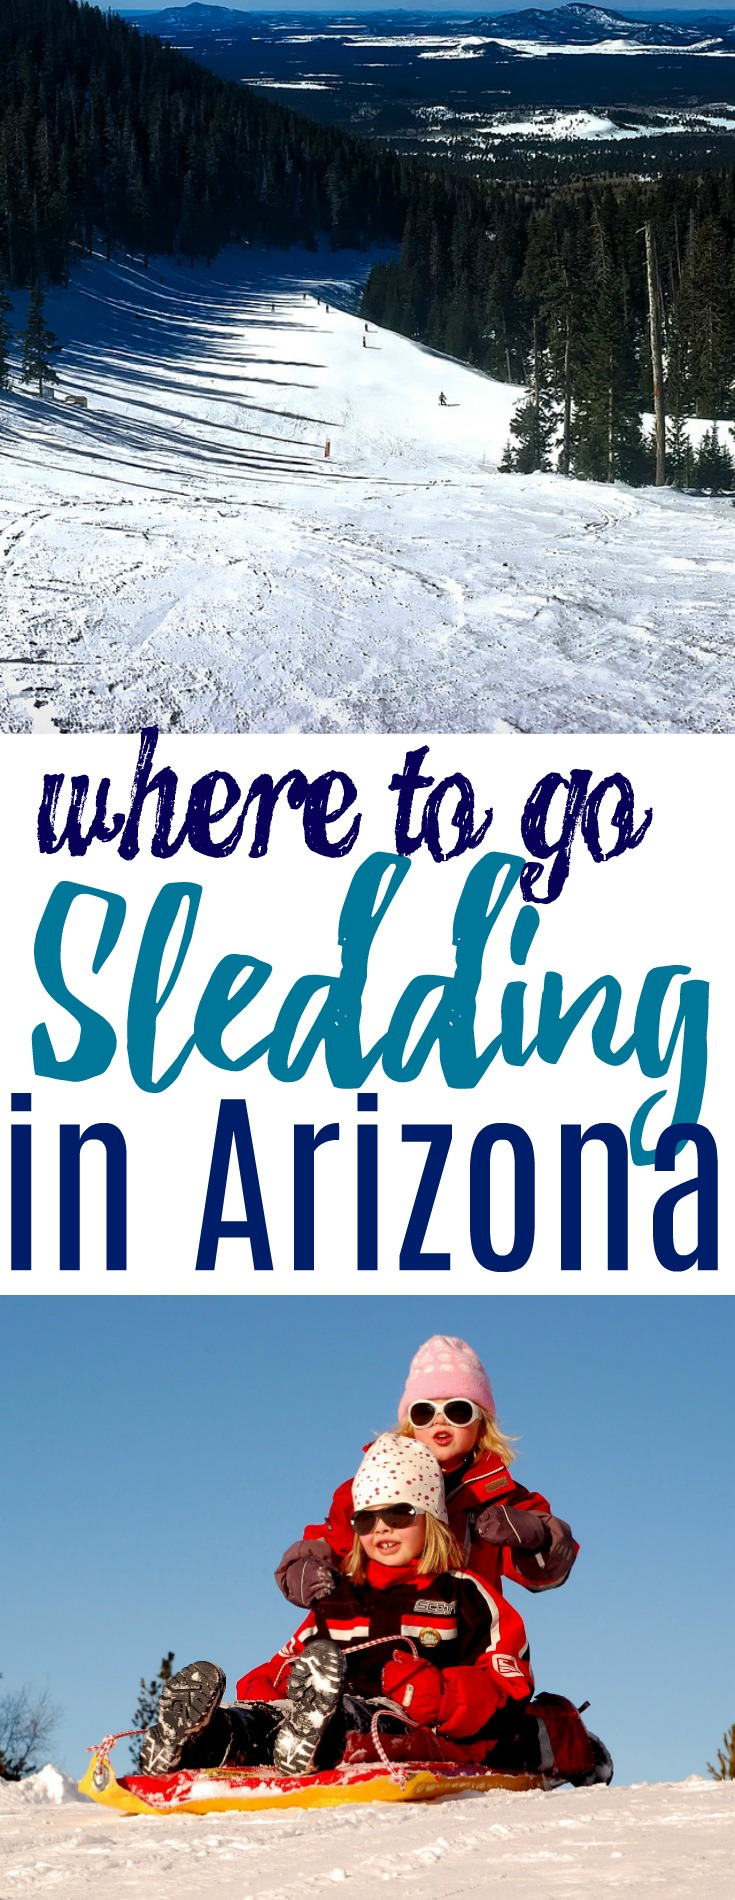 Arizona winters can be a huge relief after a long summer of hot temps. Here are some of the best places to go sledding in Arizona with the family!